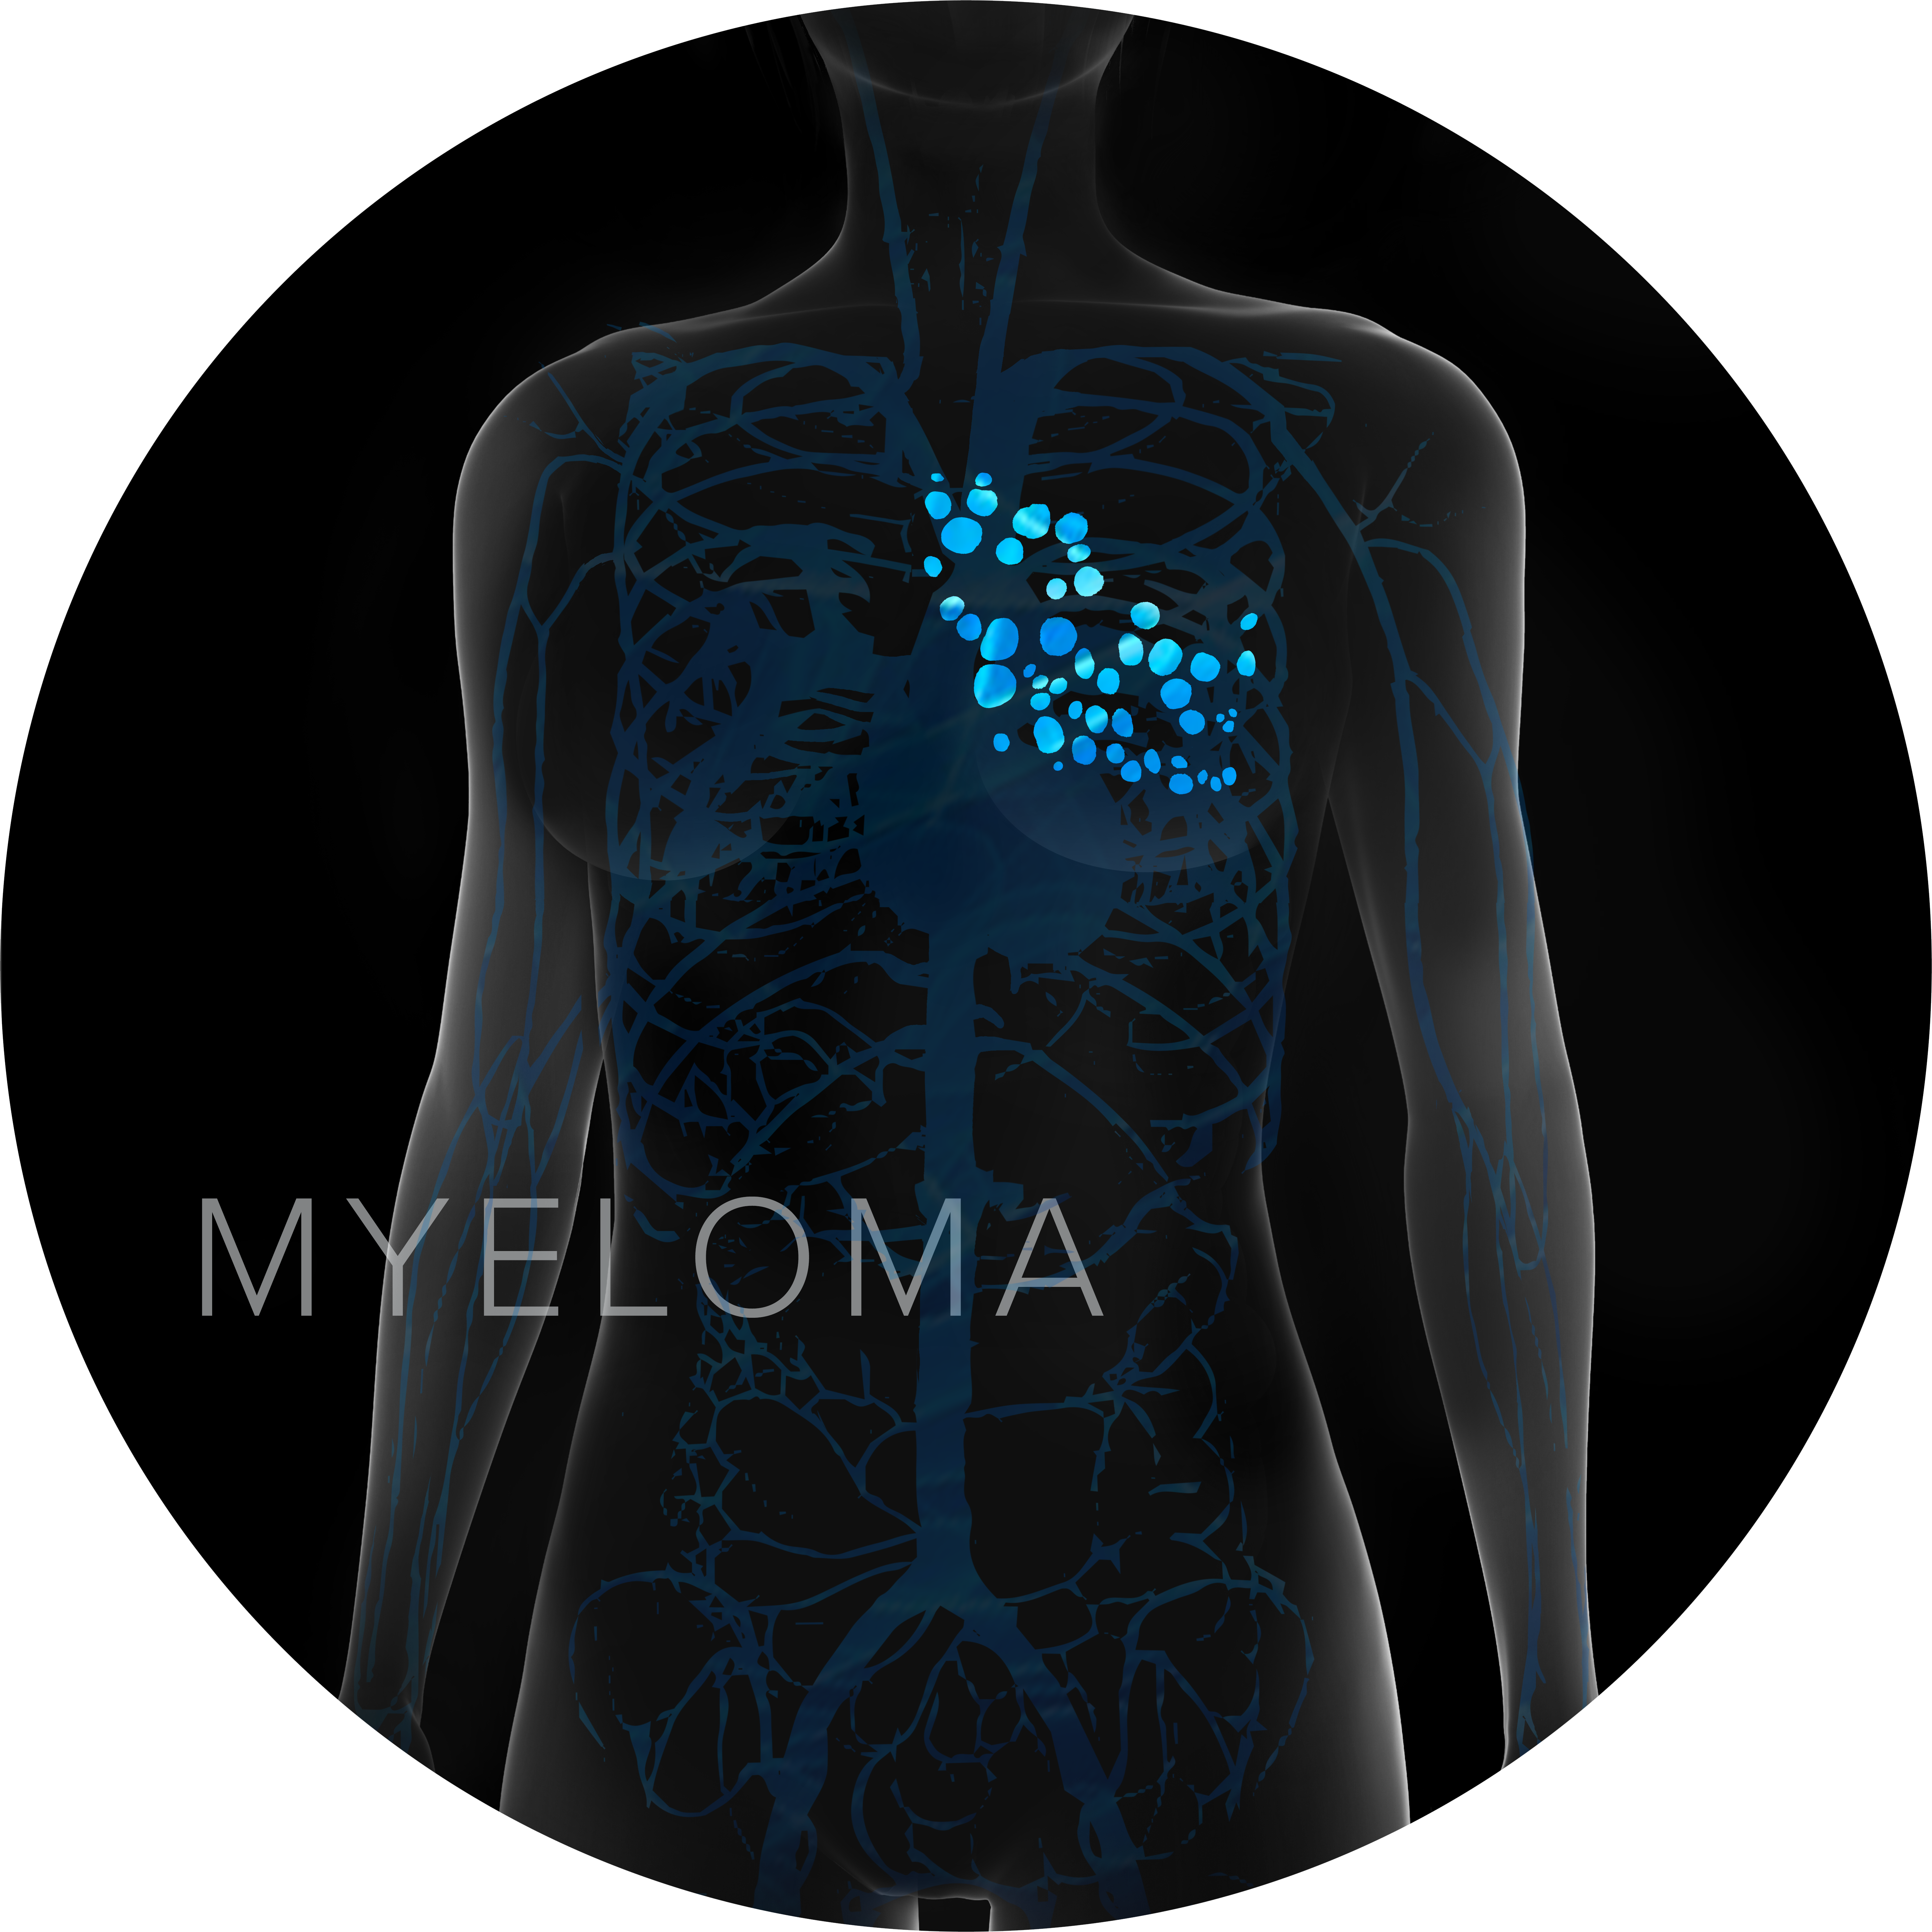 multiple myeloma graphic